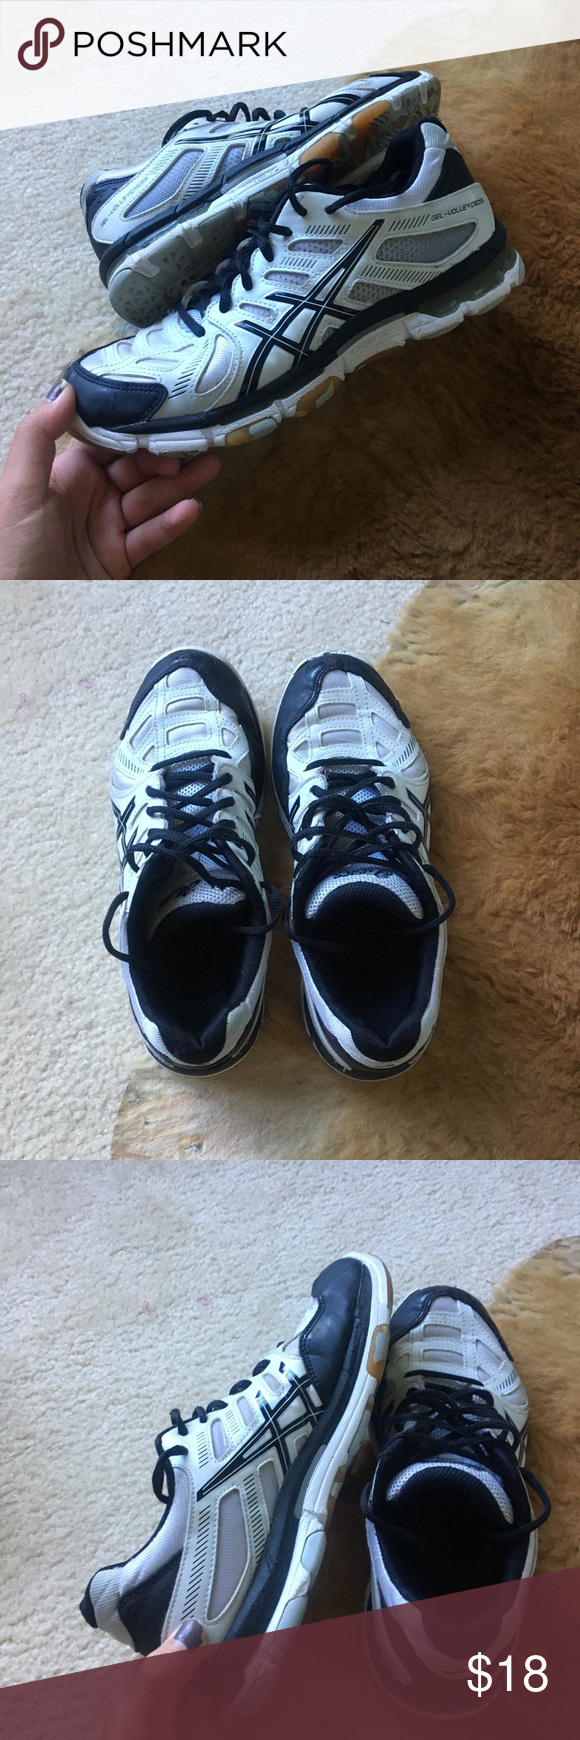 Black White Asics Gel Volleycross Volleyball Shoes Asics Volley Cross Volleyball Shoes Used Condition With Some Scuffin Volleyball Shoes Asics Black And White